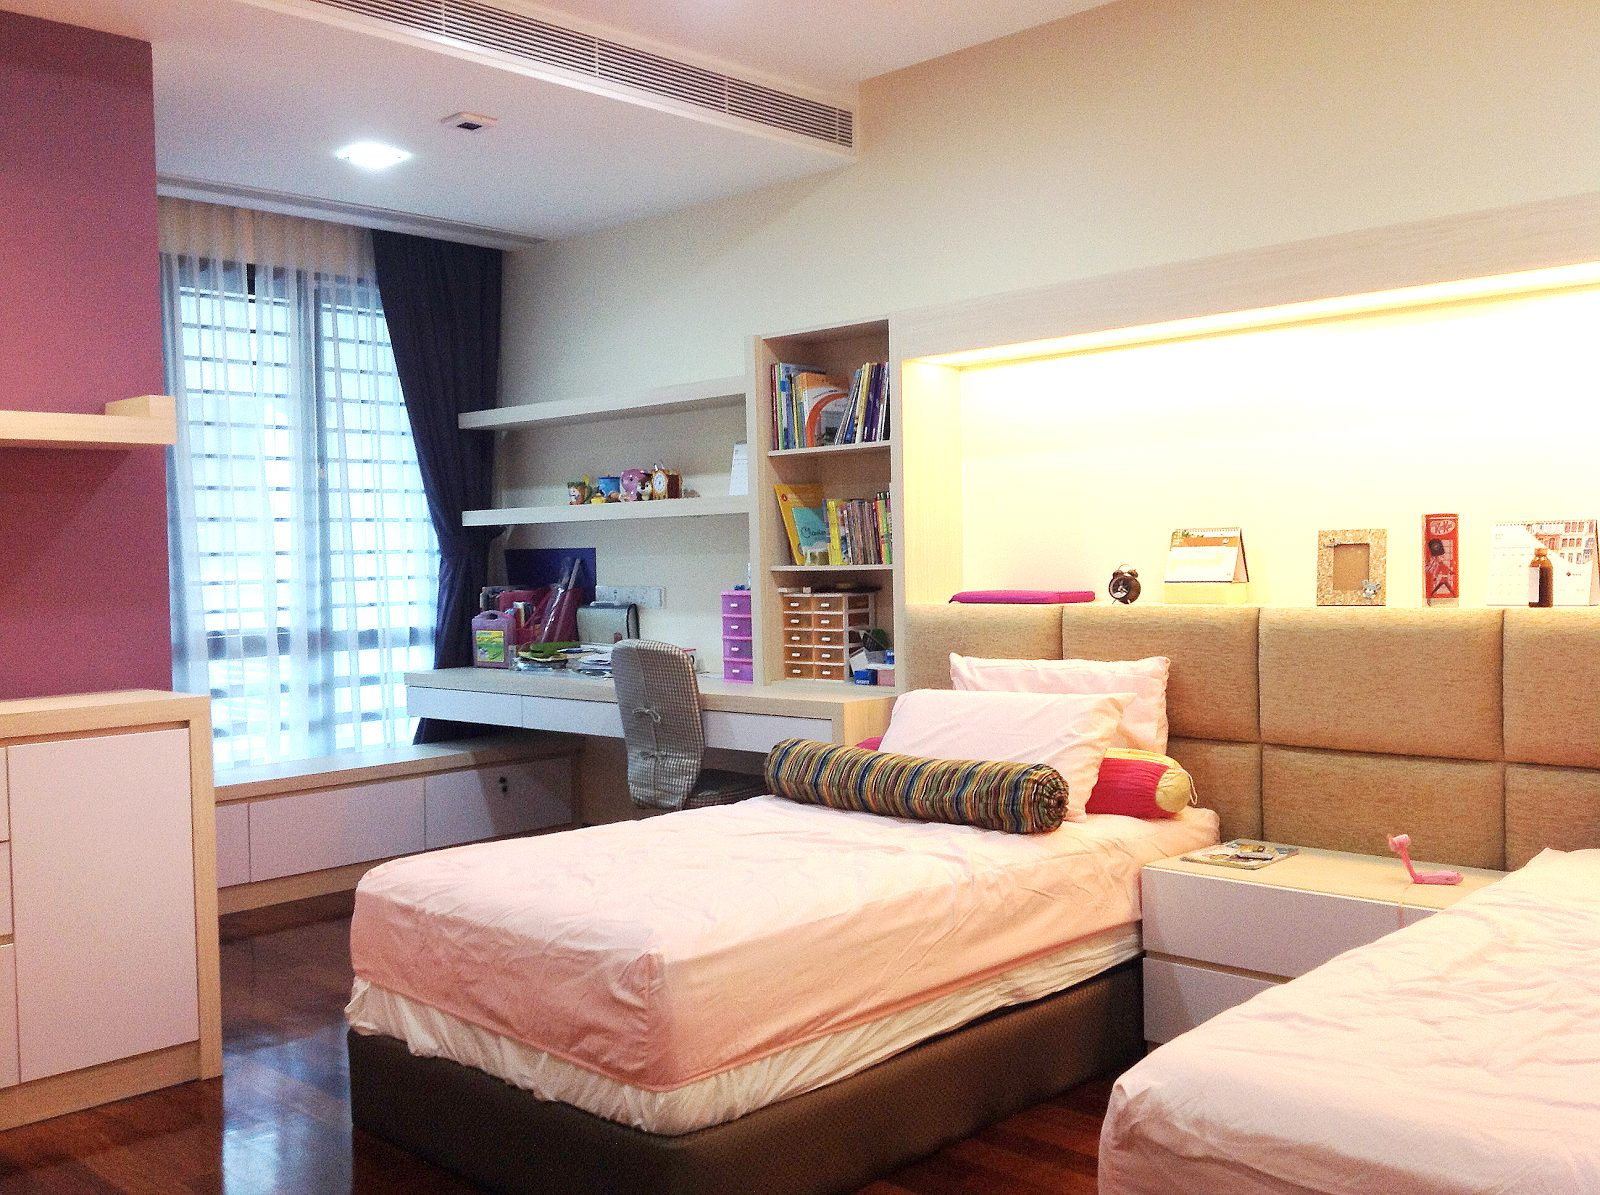 Teenager's bedroom design with integrated study area and display area above the beds in Bandar Kinrara 9, Puchong